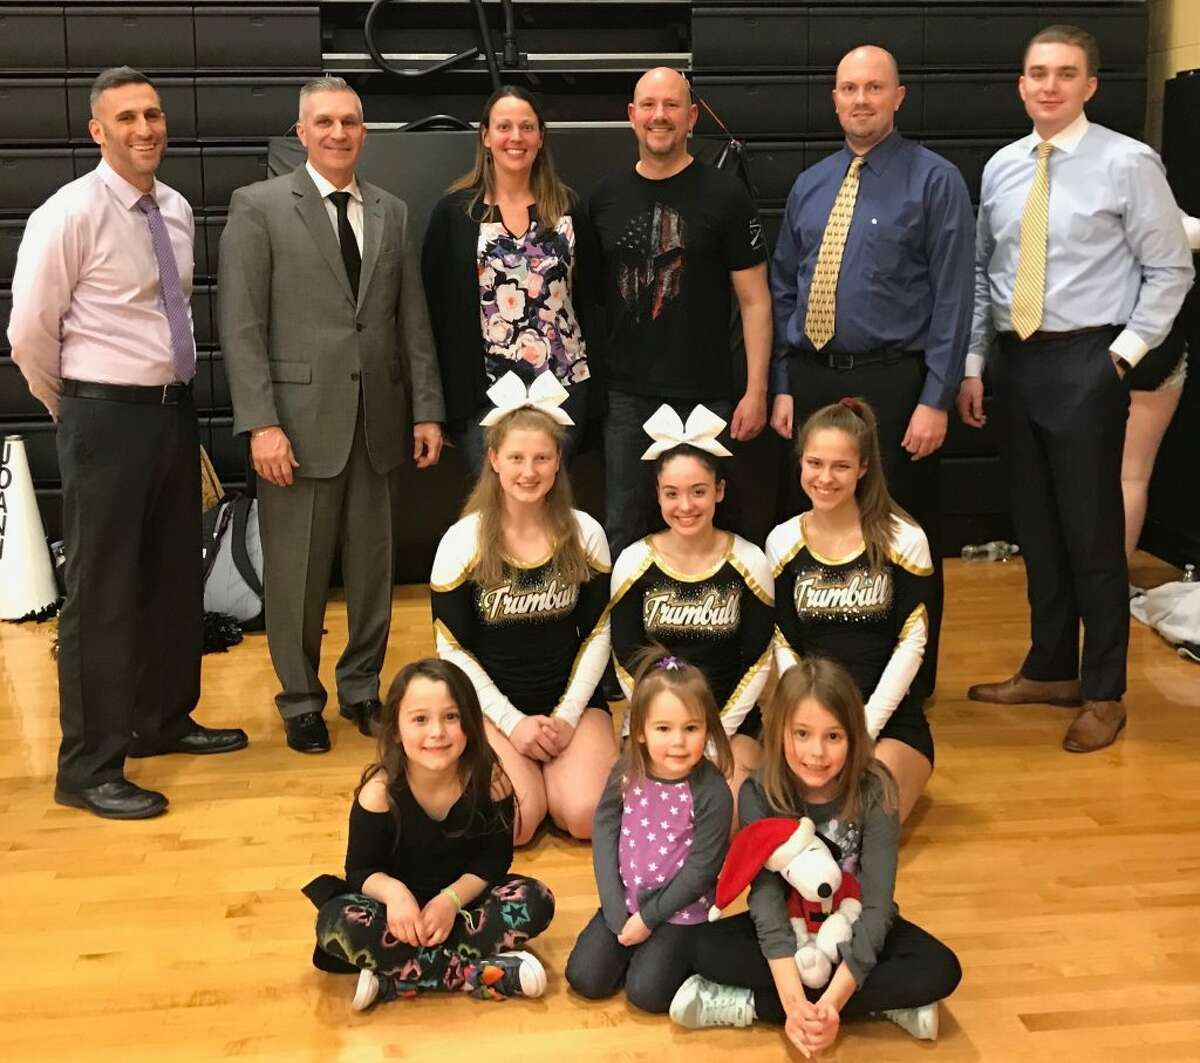 Kief Doyle was honored by the Trumbull High boys basketball program for his military service to our country. Pictured (front row) are daughters Brooklyn Doyle, Cassidy Doyle and Addison Doyle; (second row) THS cheerleaders Katelyn Miller, Joanna Vizcarrondo and Ashley Deal; (third row) Trumbull assistant coach Matt Landin, head coach Buddy Bray, wife Rachel Doyle, Keif Doyle, assistant coach Bob Packer and assistant coach Cliff Bray.